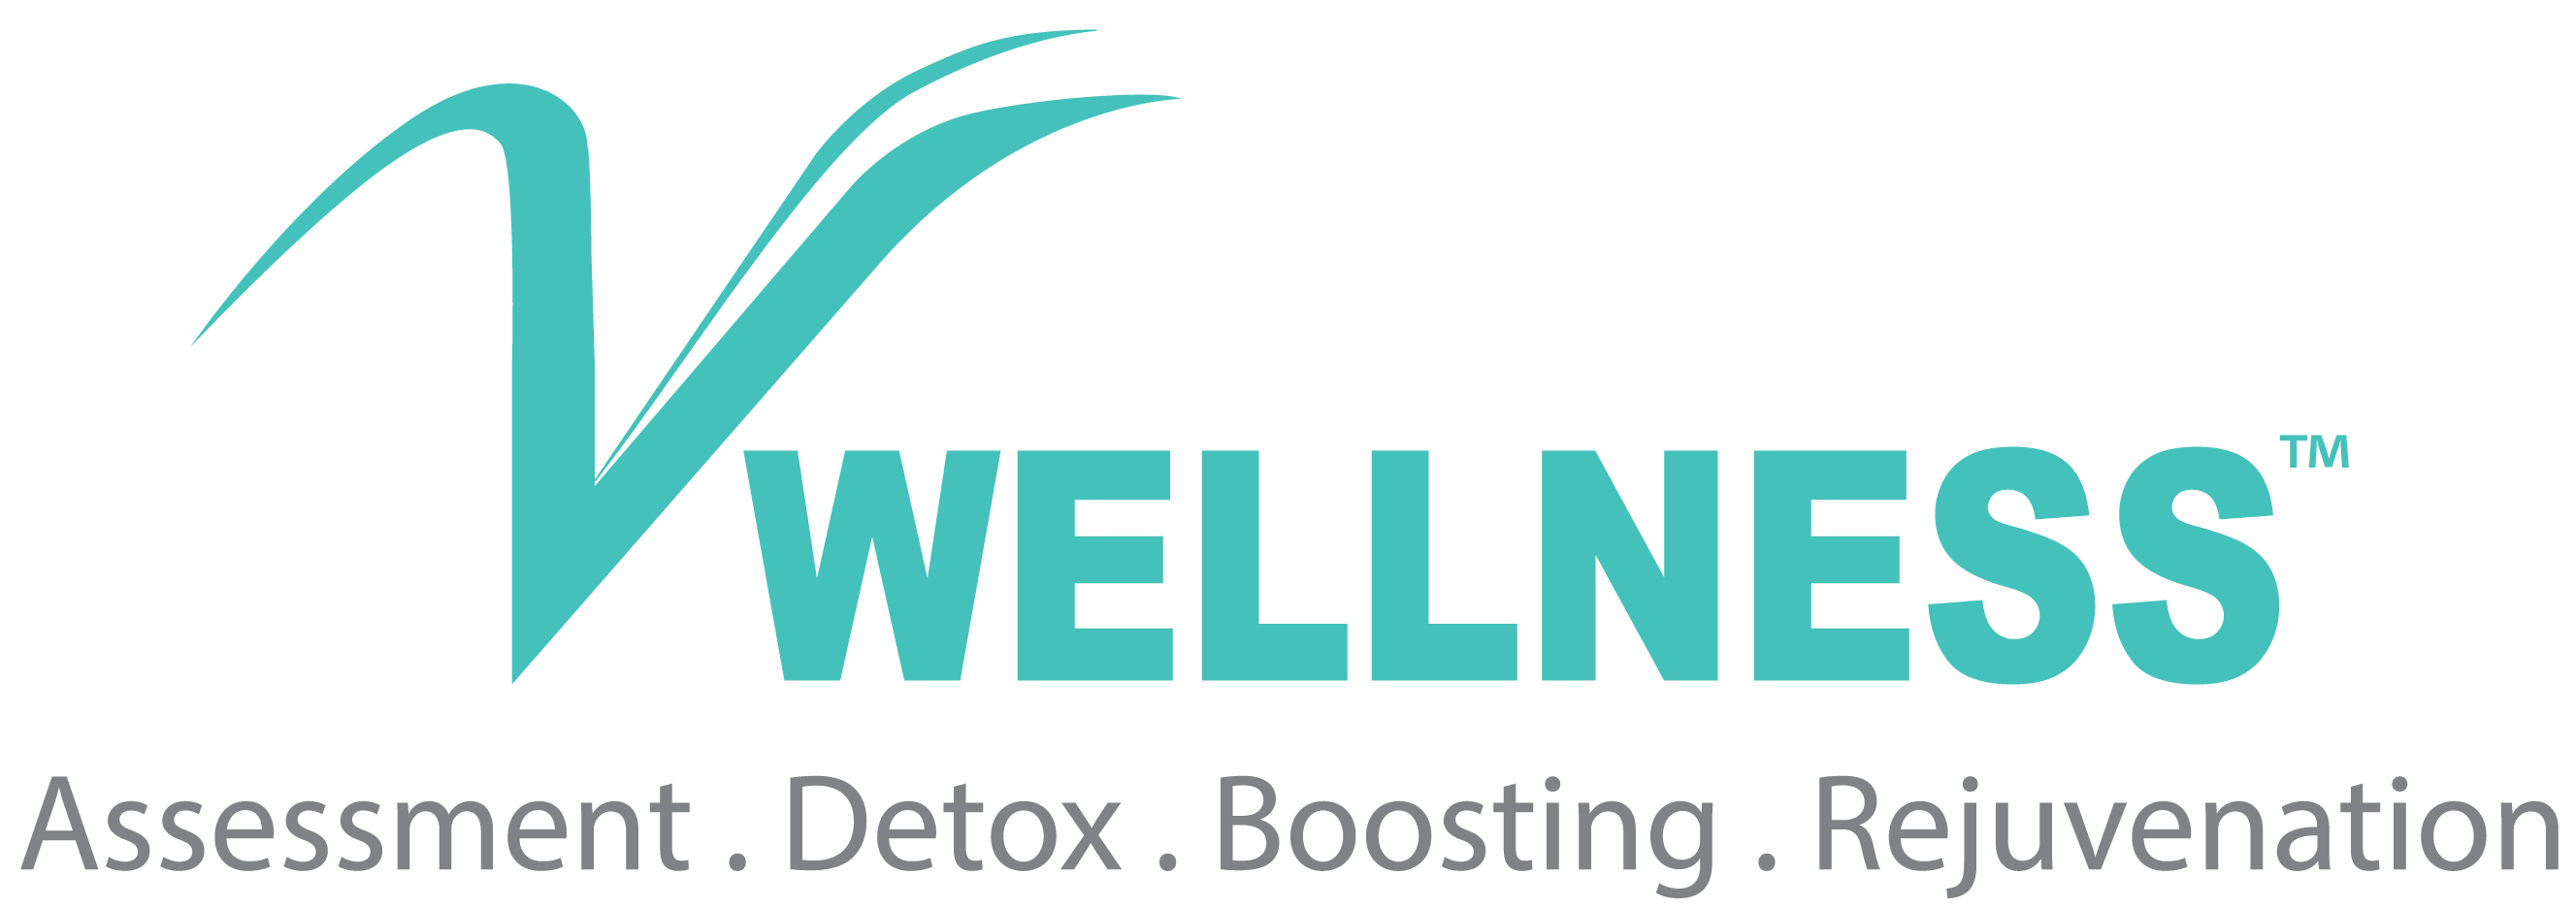 V Wellness Logo (Web)